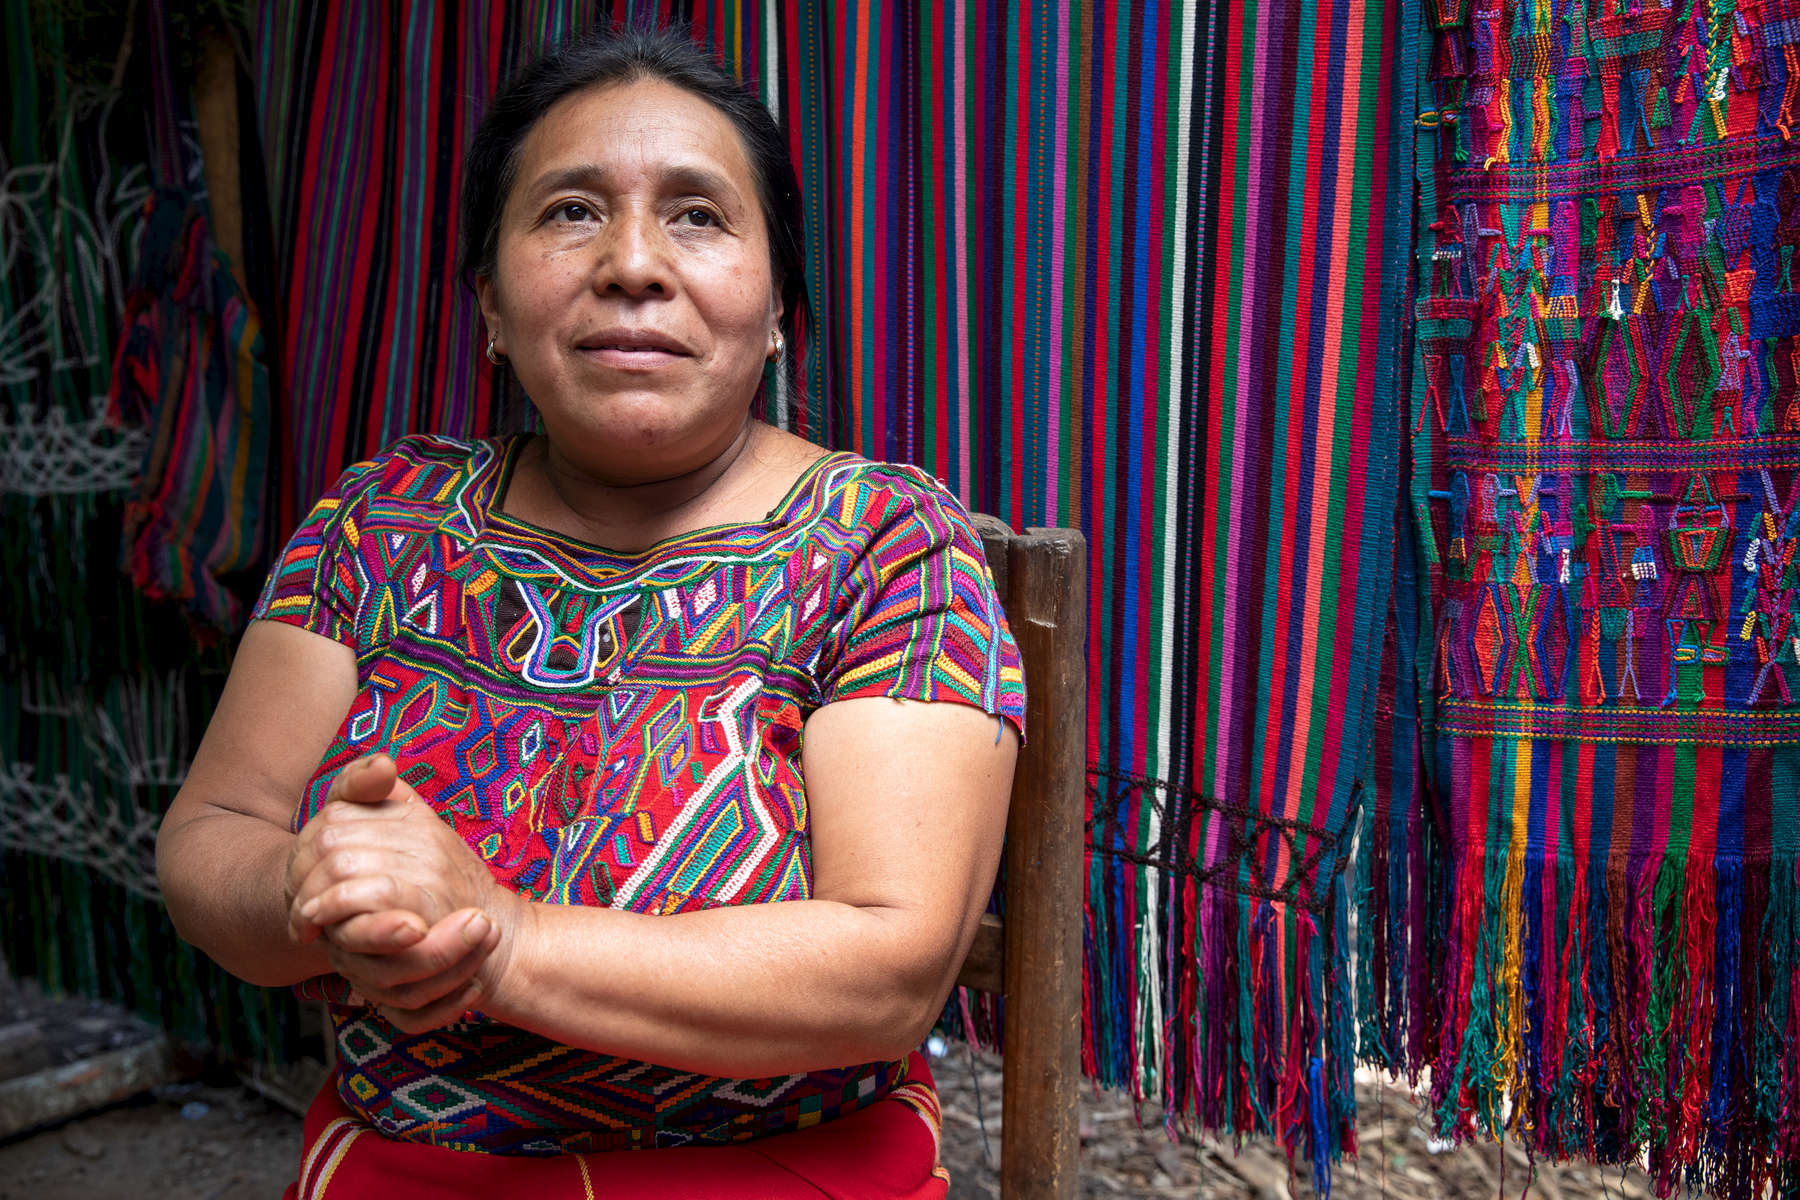 "Maria de León Santiago lives with her children and grandchildren in a small community in Guatemala's Western Highlands, an agricultural region characterized by underdevelopment, malnutrition, poverty and a lack of opportunity. She says the needs are immense here — water, sanitation, shelter, food, jobs, etc. — and she often struggles to support her family with farming and weaving. Because of this, migration is a fact of life for Maria — her husband leaves every year to work in a sugarcane plantation to earn money. It's not what they want, she says, but it's the only way they can feed their children. Maria has recently started saving for the first time ever through the ""Communities Leading Development"" program, which is implemented by local partners with technical support from Mercy Corps. The program aims to improve quality of life for families in 200 communities in the Western Highlands, in part by installing community savings and loans groups to build financial stability. Maria is the president of her savings and loan group, and she says she is focused solely on saving right now, so she can give her family a better life than she had growing up."